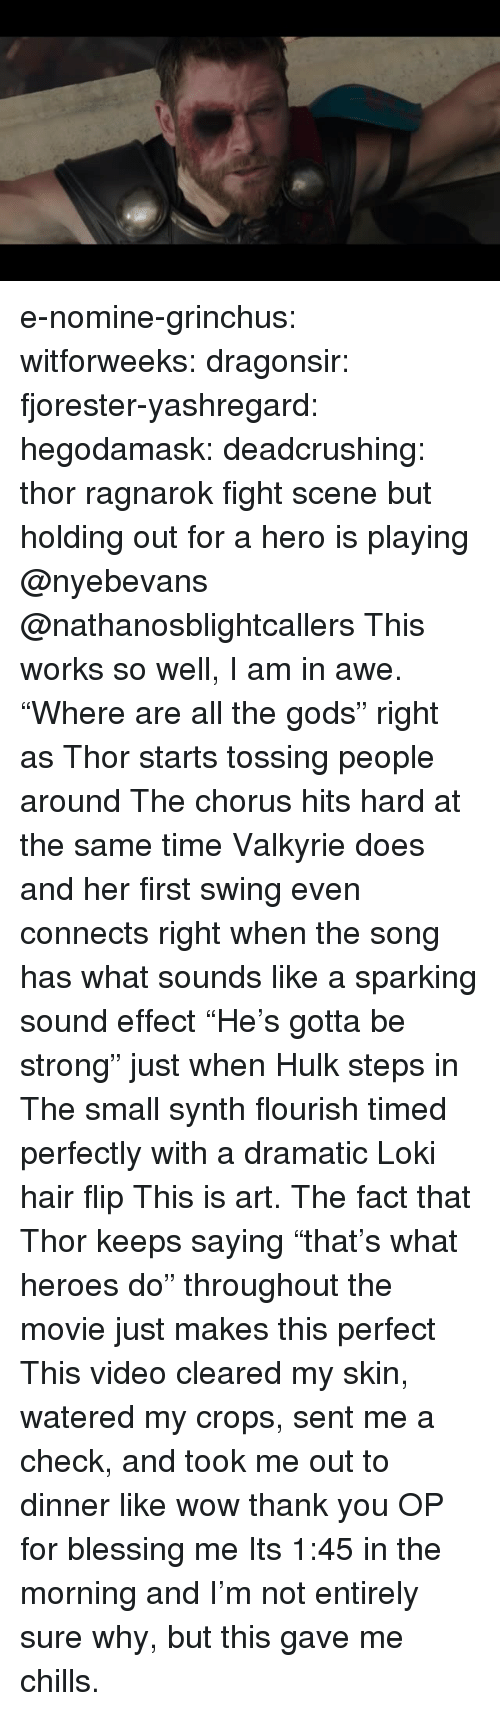 "Tumblr, Wow, and Hulk: e-nomine-grinchus: witforweeks:  dragonsir:  fjorester-yashregard:  hegodamask:  deadcrushing: thor ragnarok fight scene but holding out for a hero is playing @nyebevans @nathanosblightcallers  This works so well, I am in awe. ""Where are all the gods"" right as Thor starts tossing people around The chorus hits hard at the same time Valkyrie does and her first swing even connects right when the song has what sounds like a sparking sound effect ""He's gotta be strong"" just when Hulk steps in The small synth flourish timed perfectly with a dramatic Loki hair flip This is art.   The fact that Thor keeps saying ""that's what heroes do"" throughout the movie just makes this perfect   This video cleared my skin, watered my crops, sent me a check, and took me out to dinner like wow thank you OP for blessing me   Its 1:45 in the morning and I'm not entirely sure why, but this gave me chills."